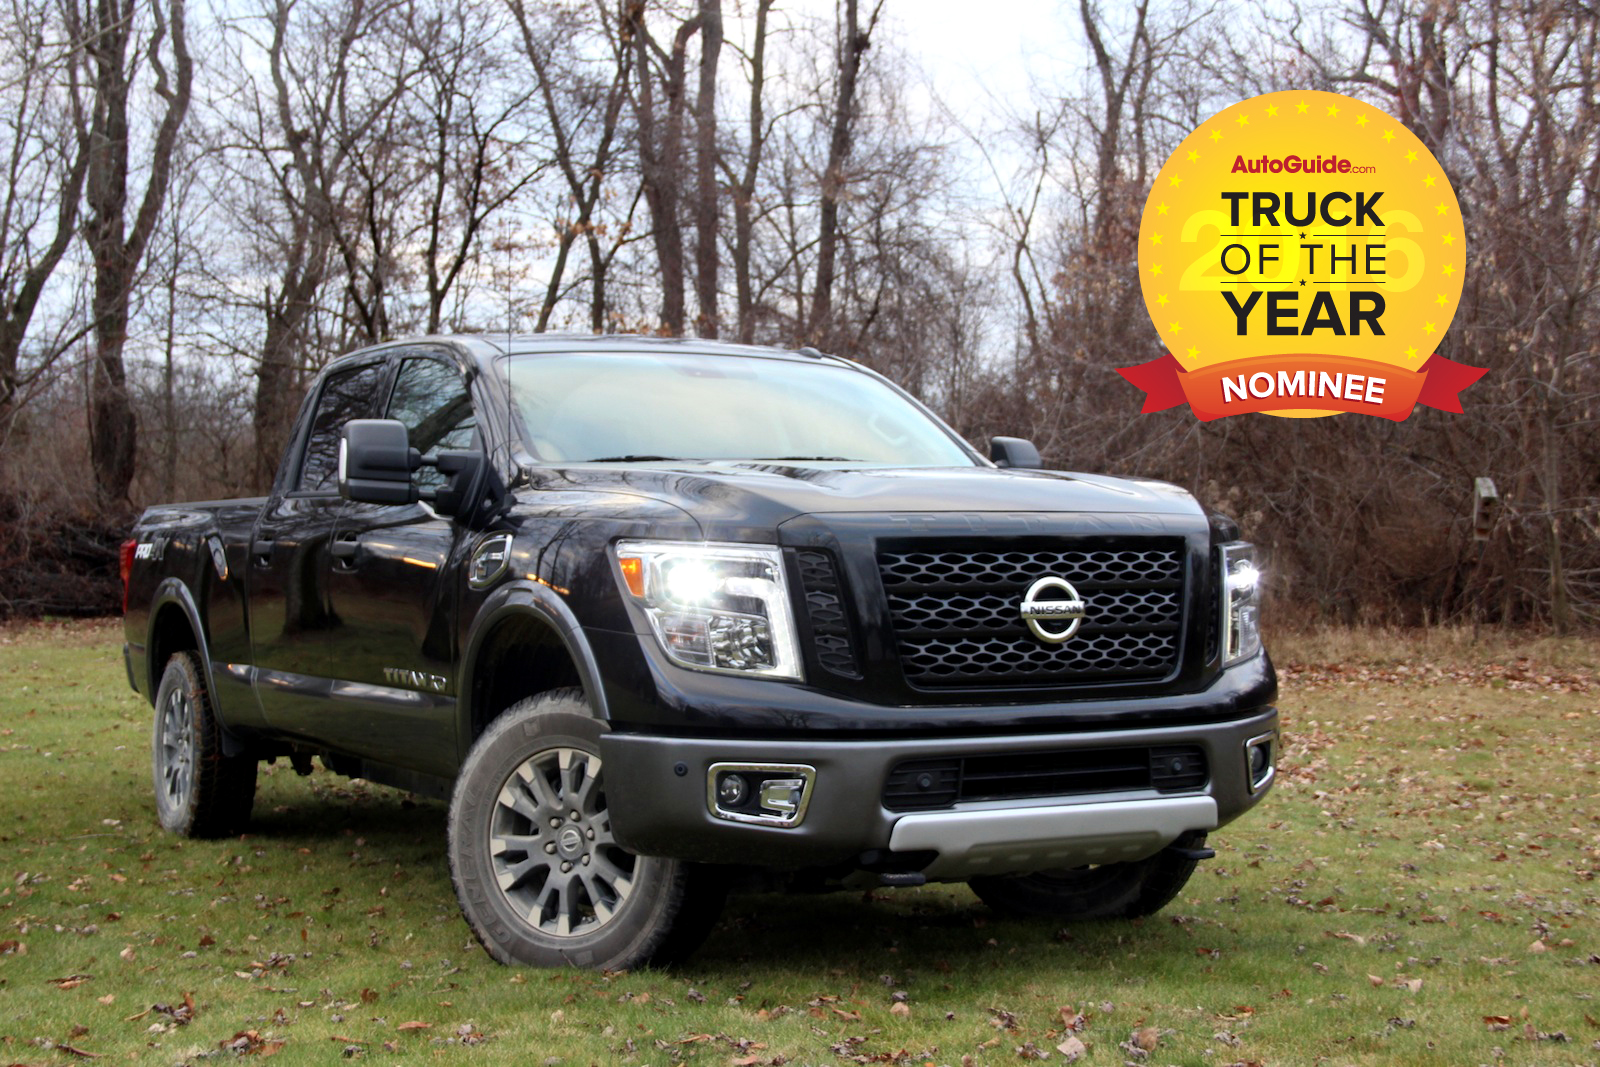 nissan titan xd 2016 truck of the year nominee news. Black Bedroom Furniture Sets. Home Design Ideas